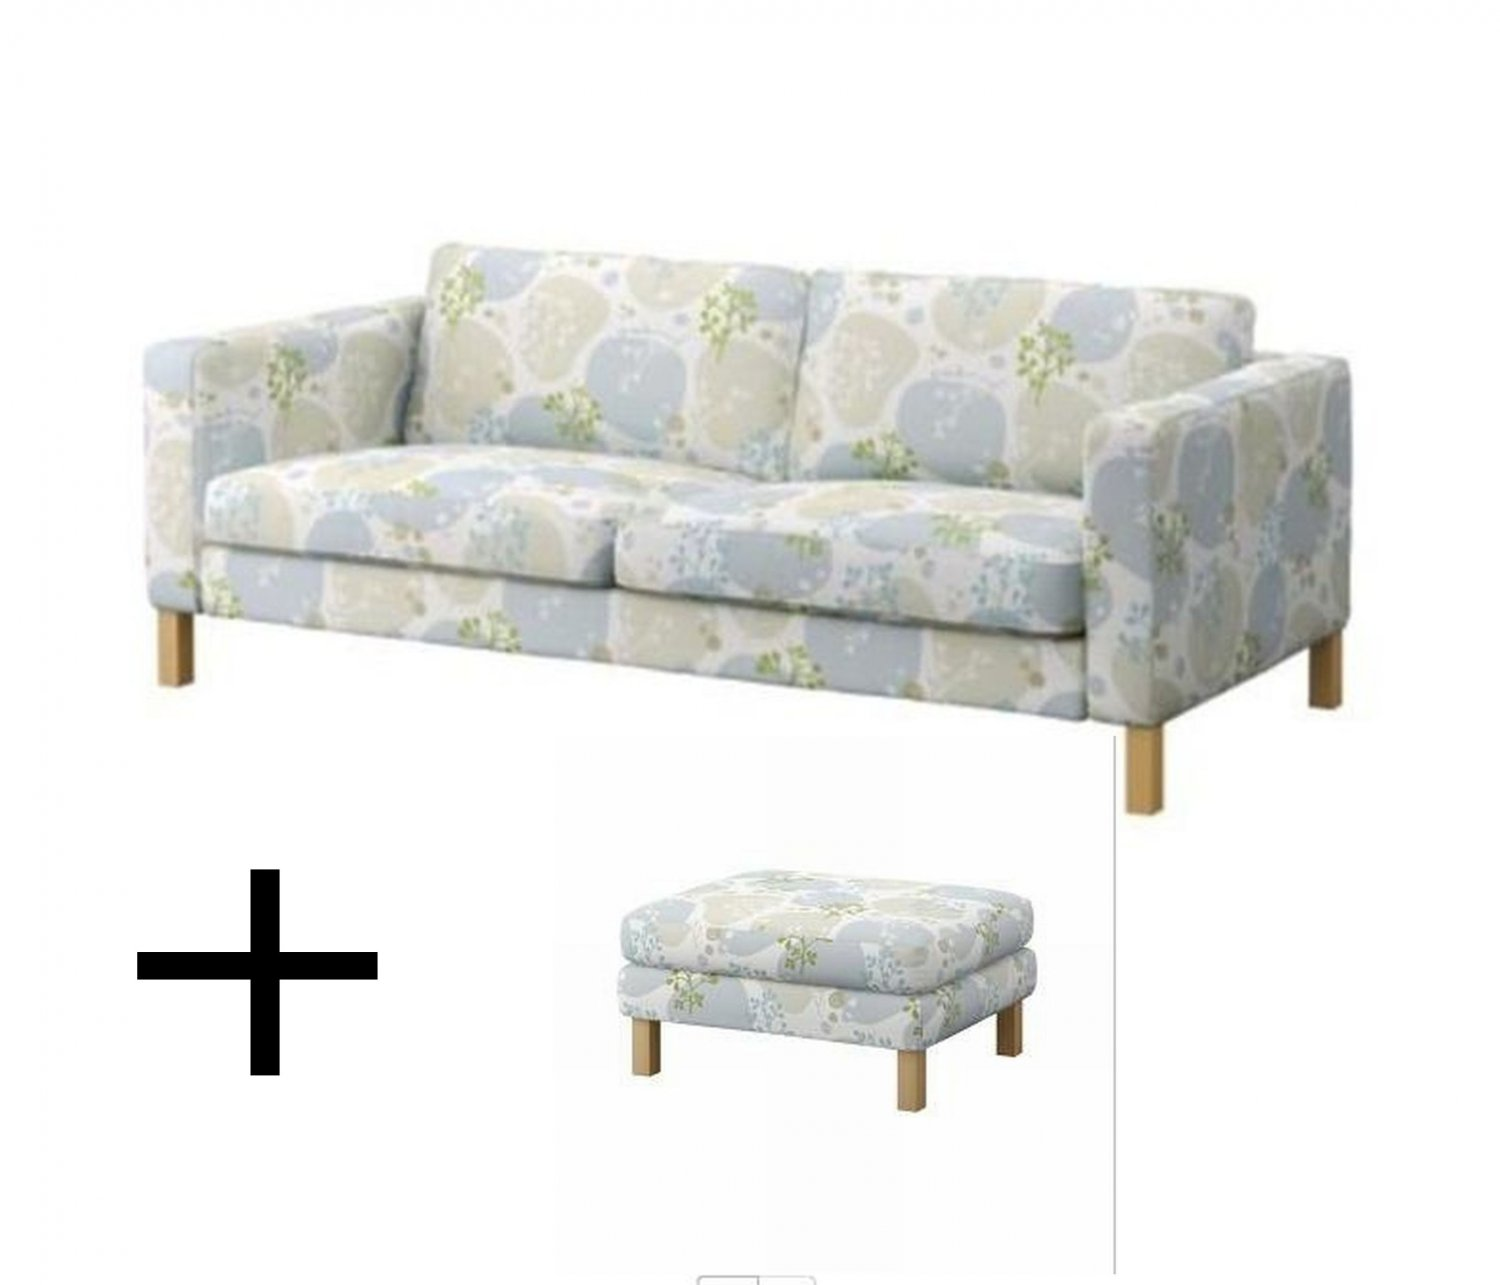 IKEA KARLSTAD Sofa Bed and Footstool SLIPCOVERS Sofabed Ottoman